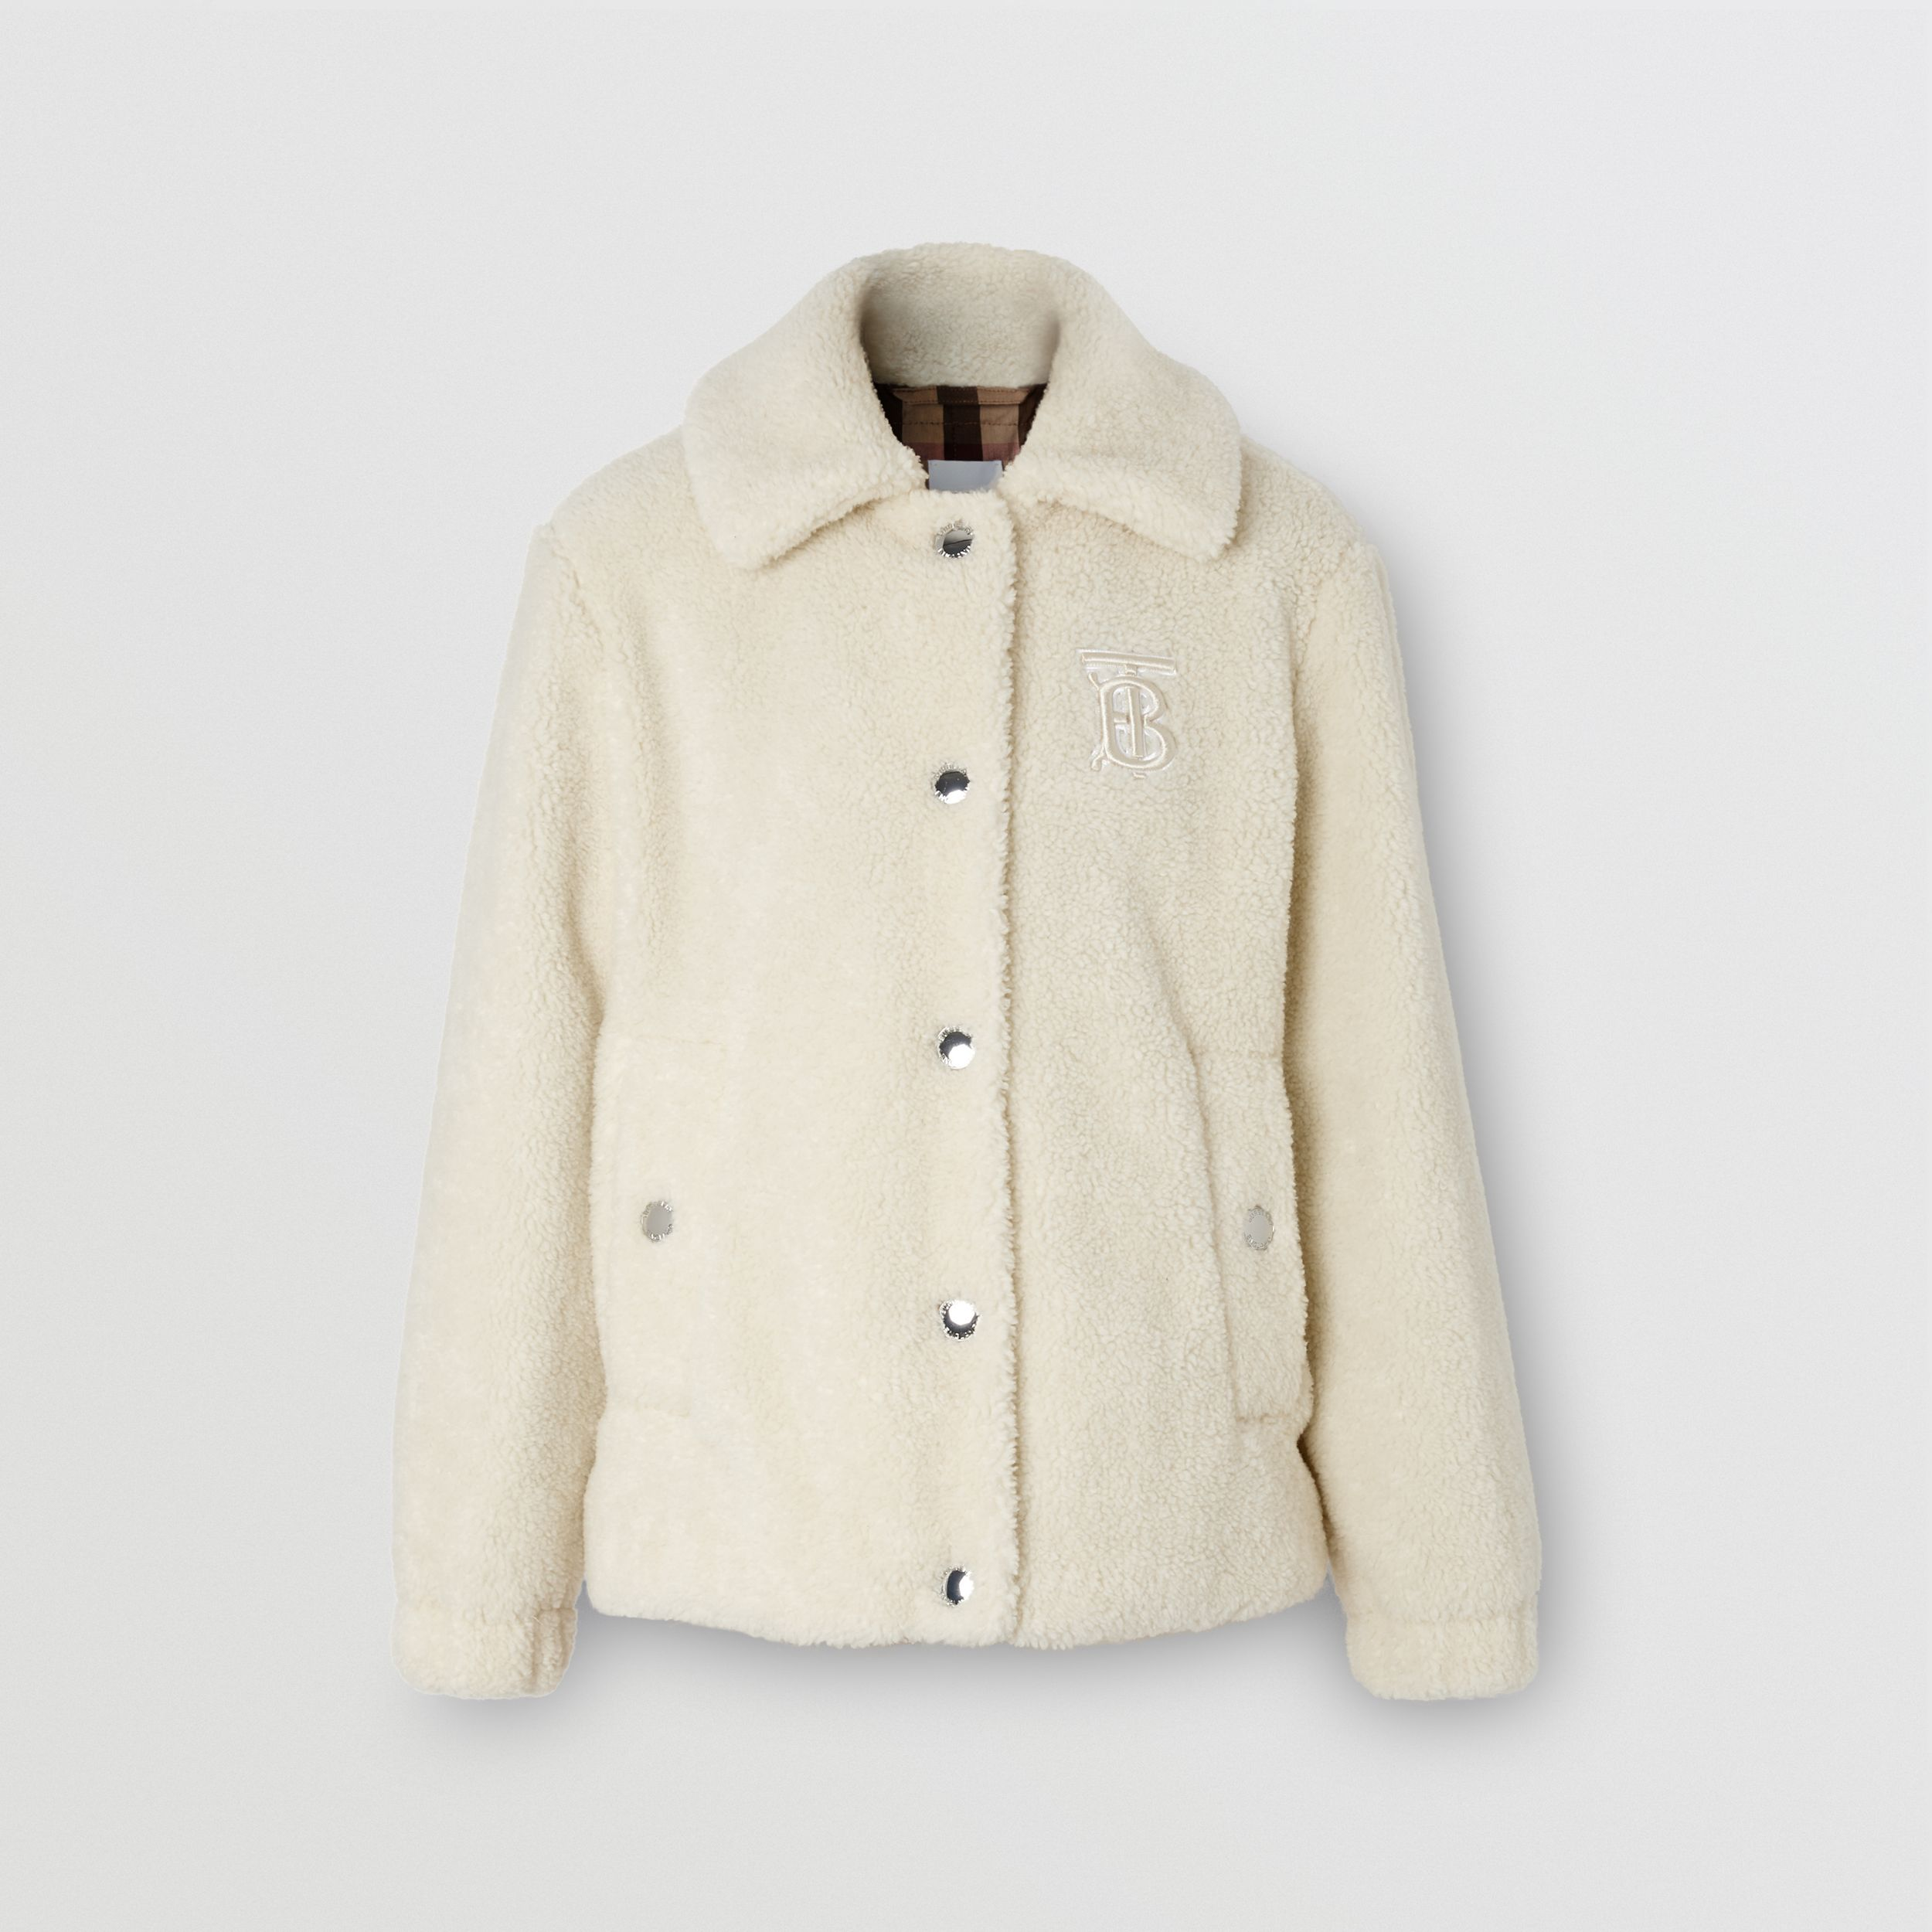 Monogram Motif Fleece Jacket in Ivory - Women | Burberry - 4